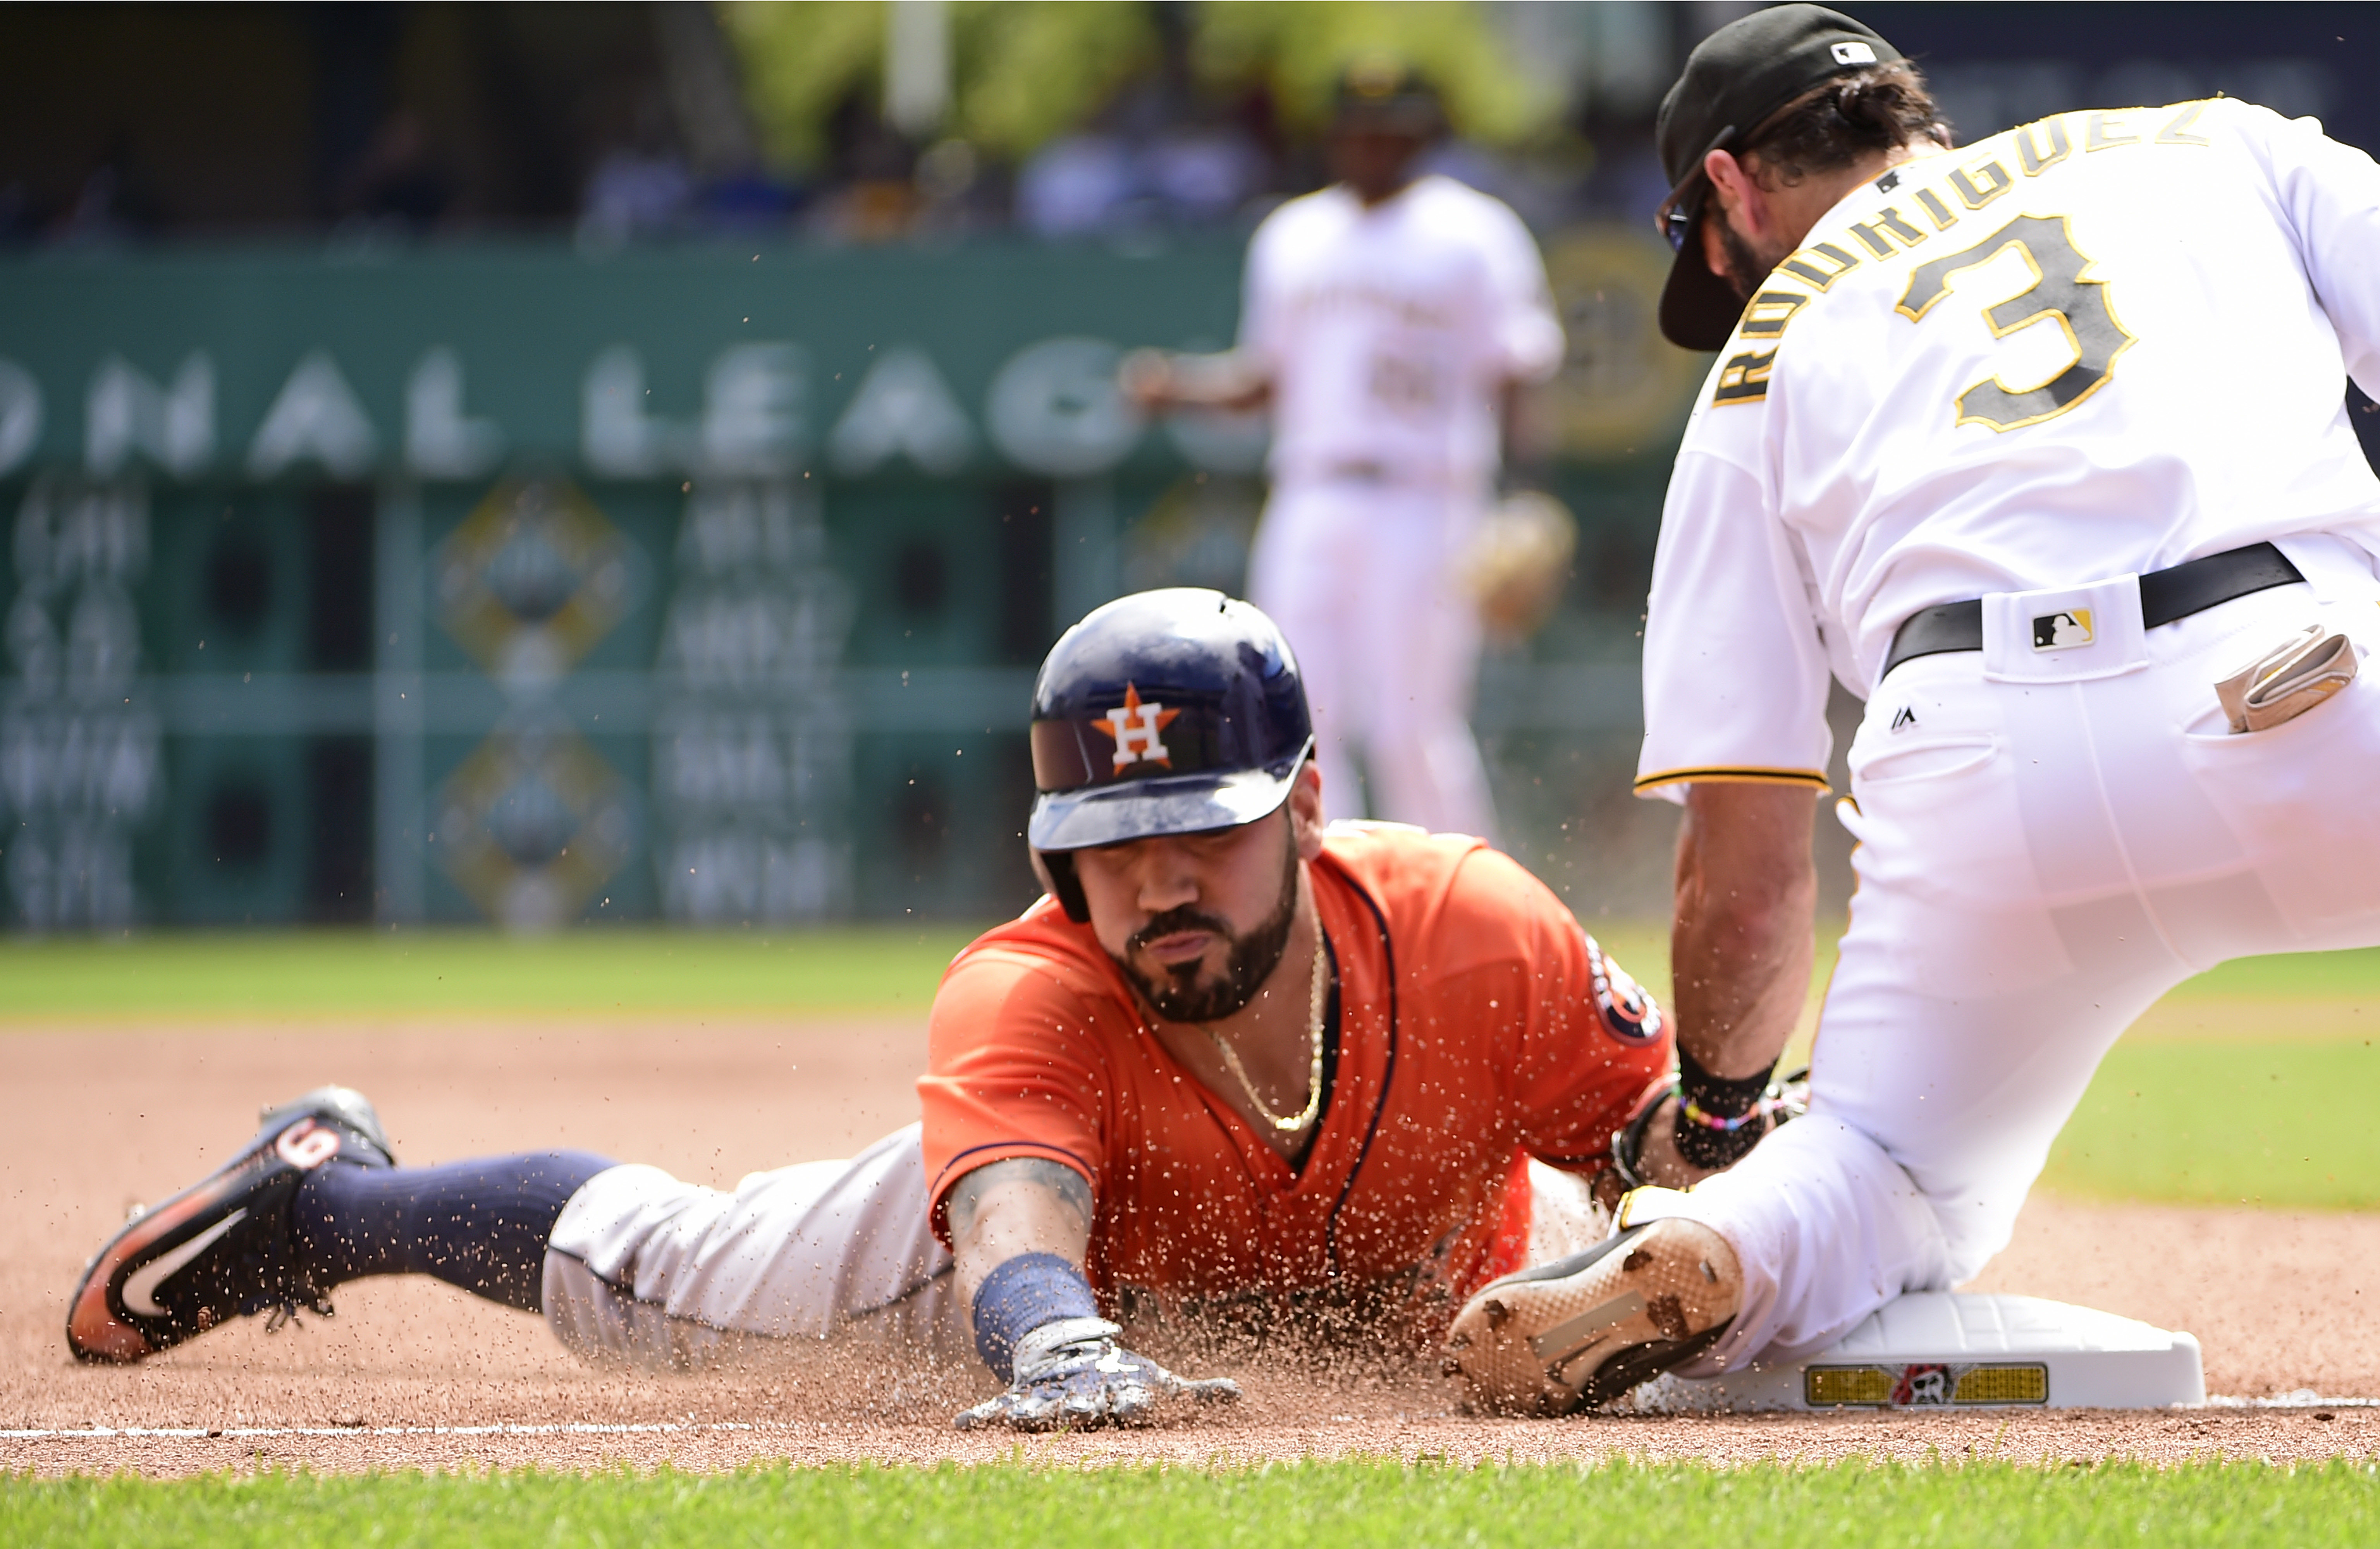 Houston Astros' Marwin Gonzalez slides safely into third with a triple as Pittsburgh Pirates' Sean Rodriguez applies a late tag in the fourth inning of a baseball game in Pittsburgh, Wednesday, Aug. 24, 2016. (AP Photo/Fred Vuich)